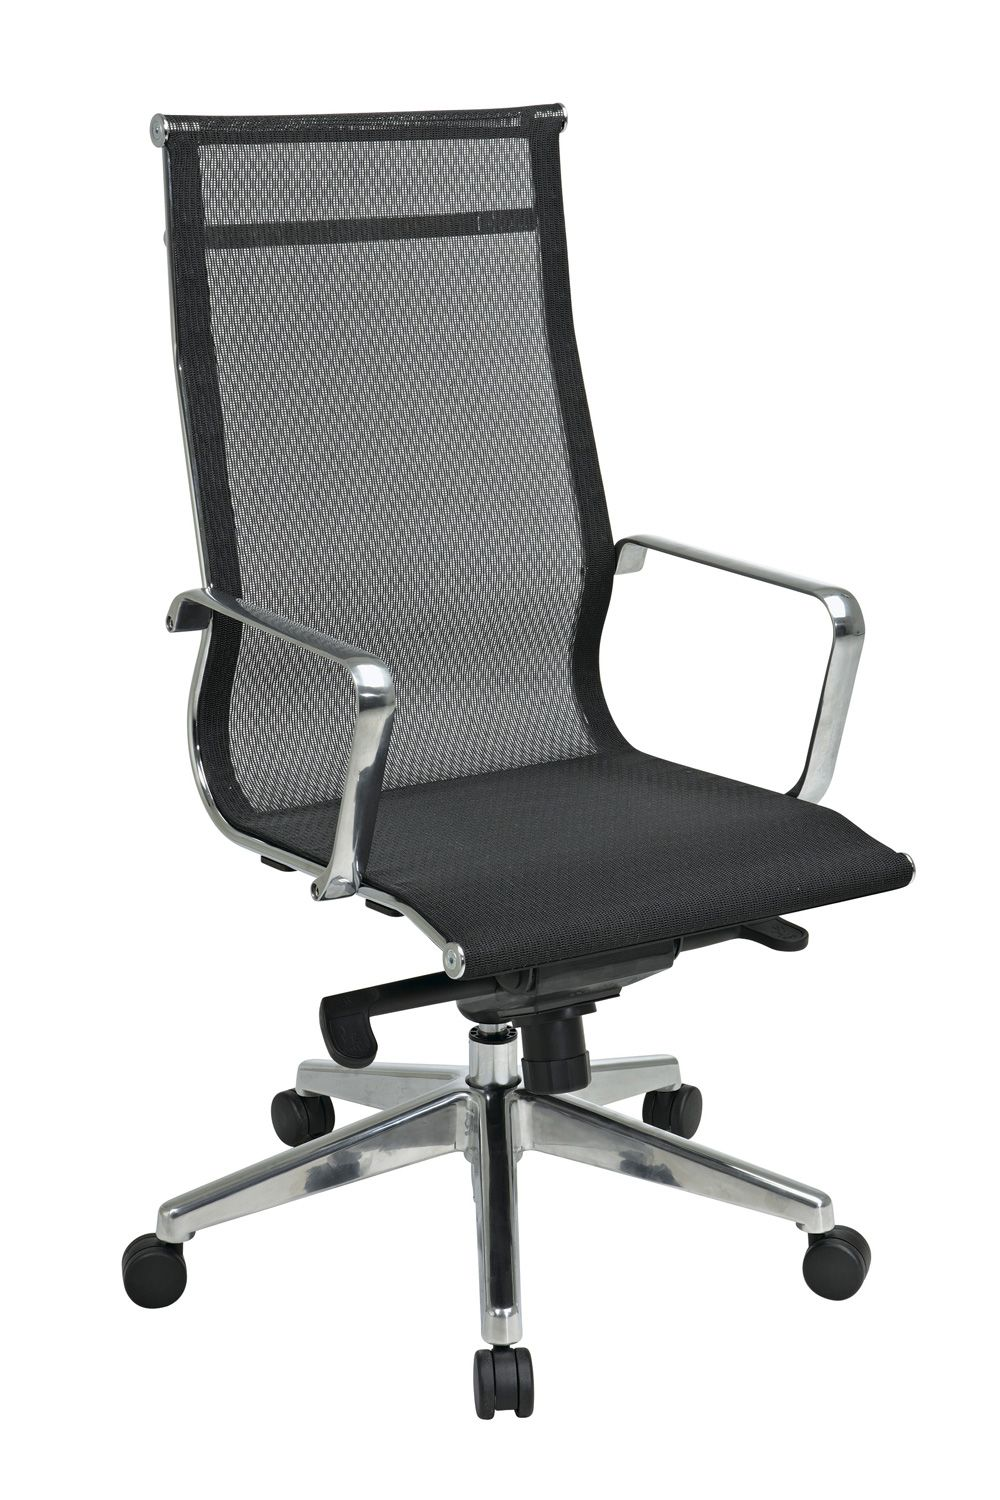 Mesh Back Office Chair With Images Office Chair Mesh Office